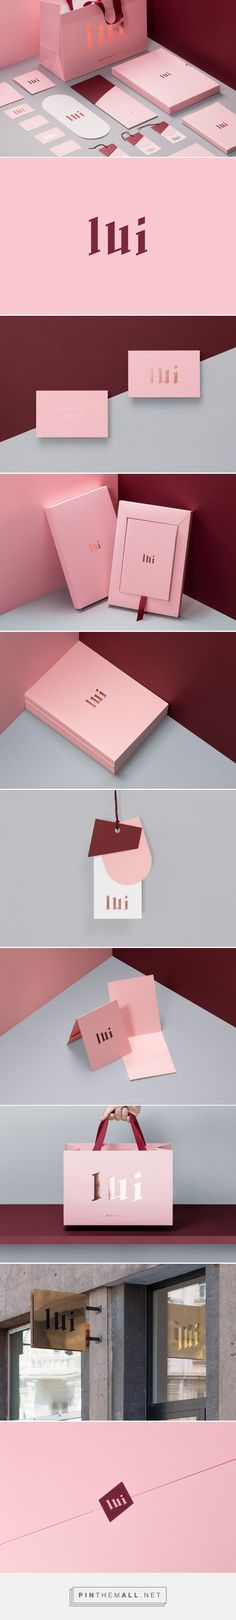 Lui Store Fashion Boutique Branding by Gustaw Dmoswski Web Design, Fashion Logo Design, Fashion Branding, Branding Agency, Business Branding, Business Card Design, Logo Inspiration, Packaging Design Inspiration, Collateral Design